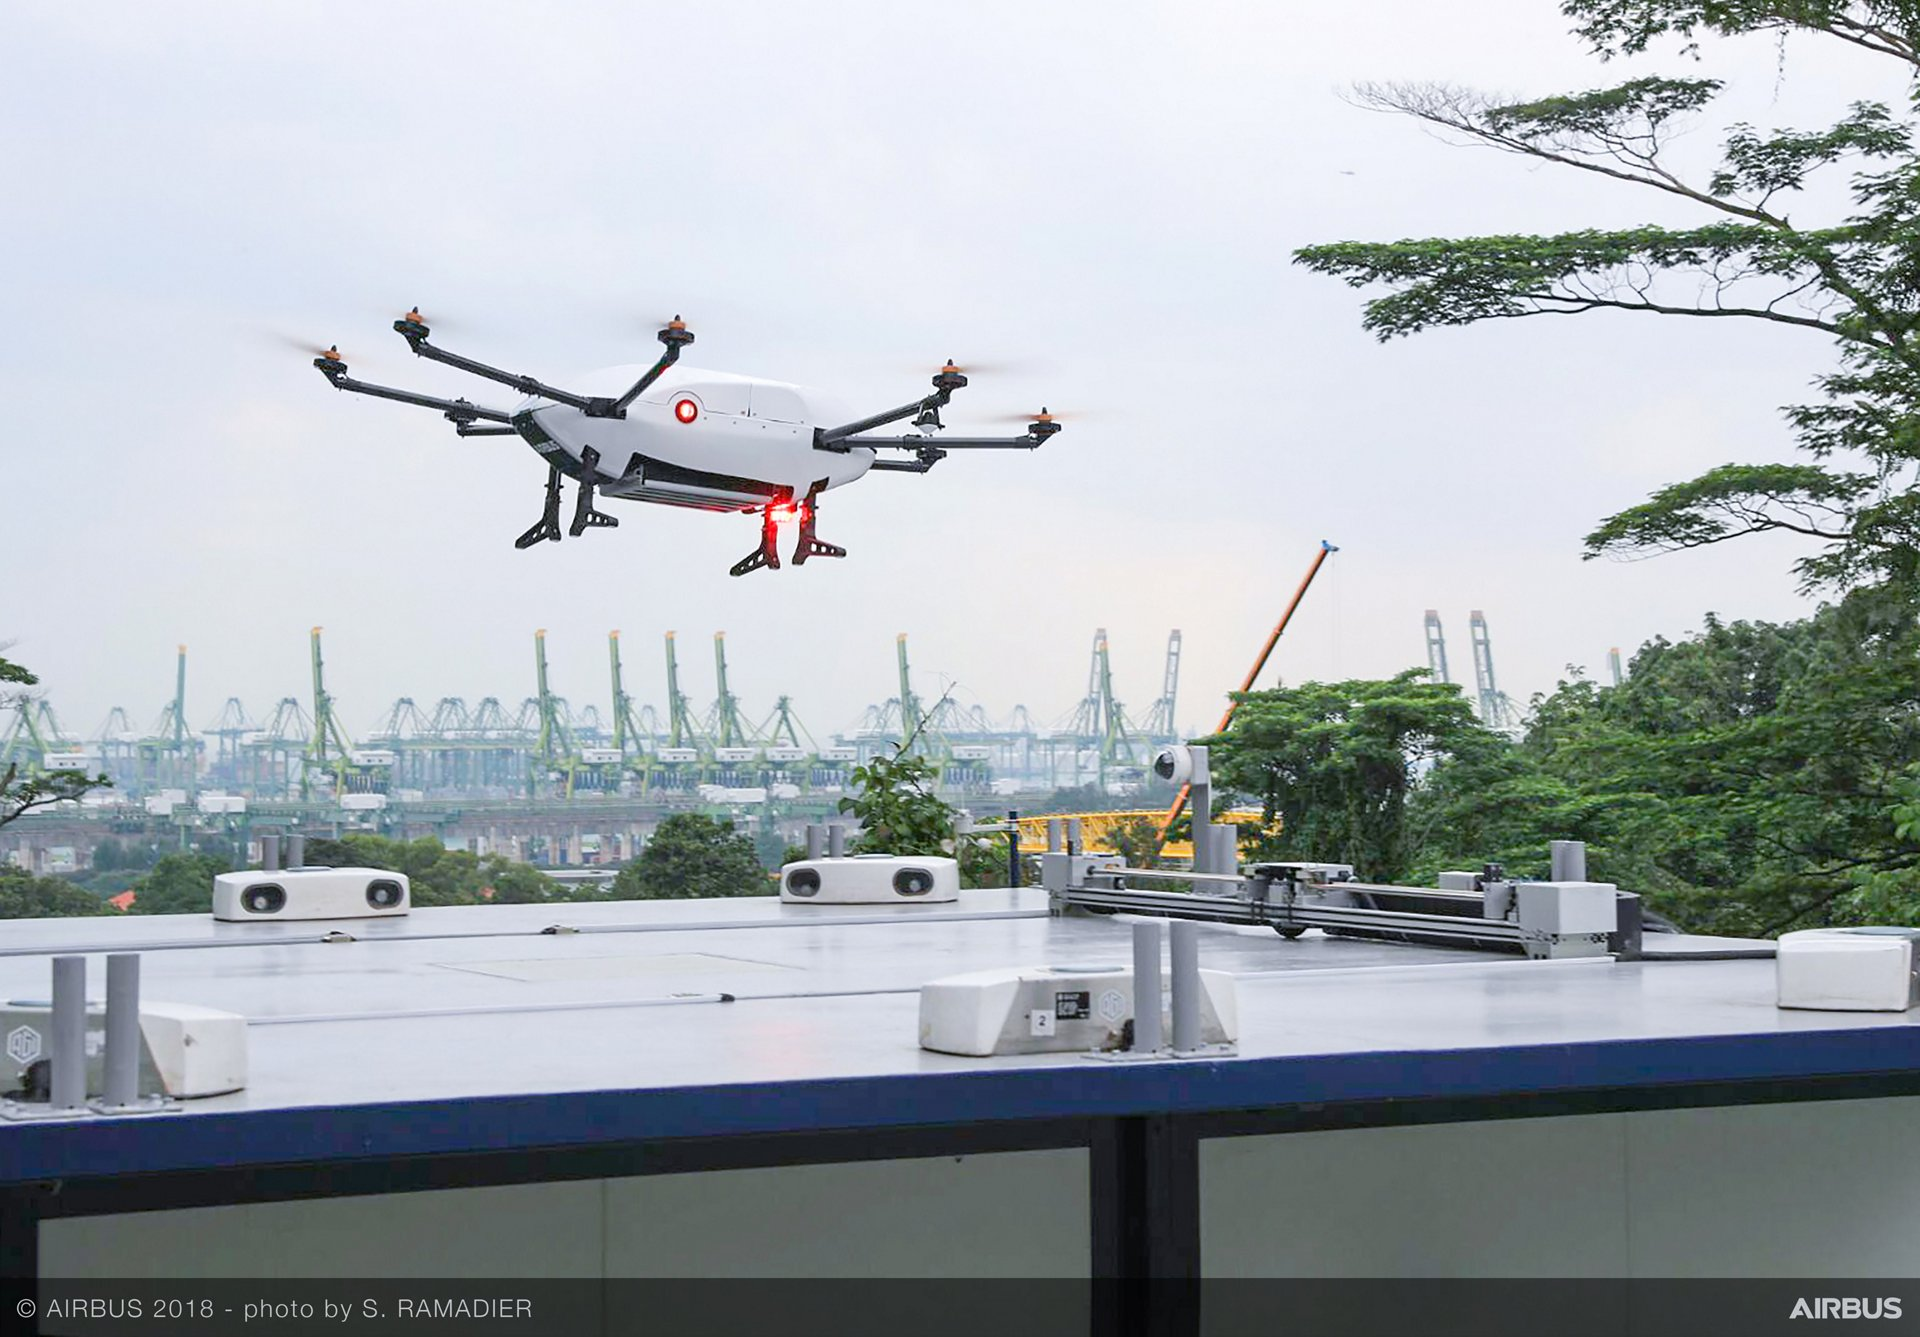 Airbus completes first demo flight of parcel delivery drone 'Skyways'